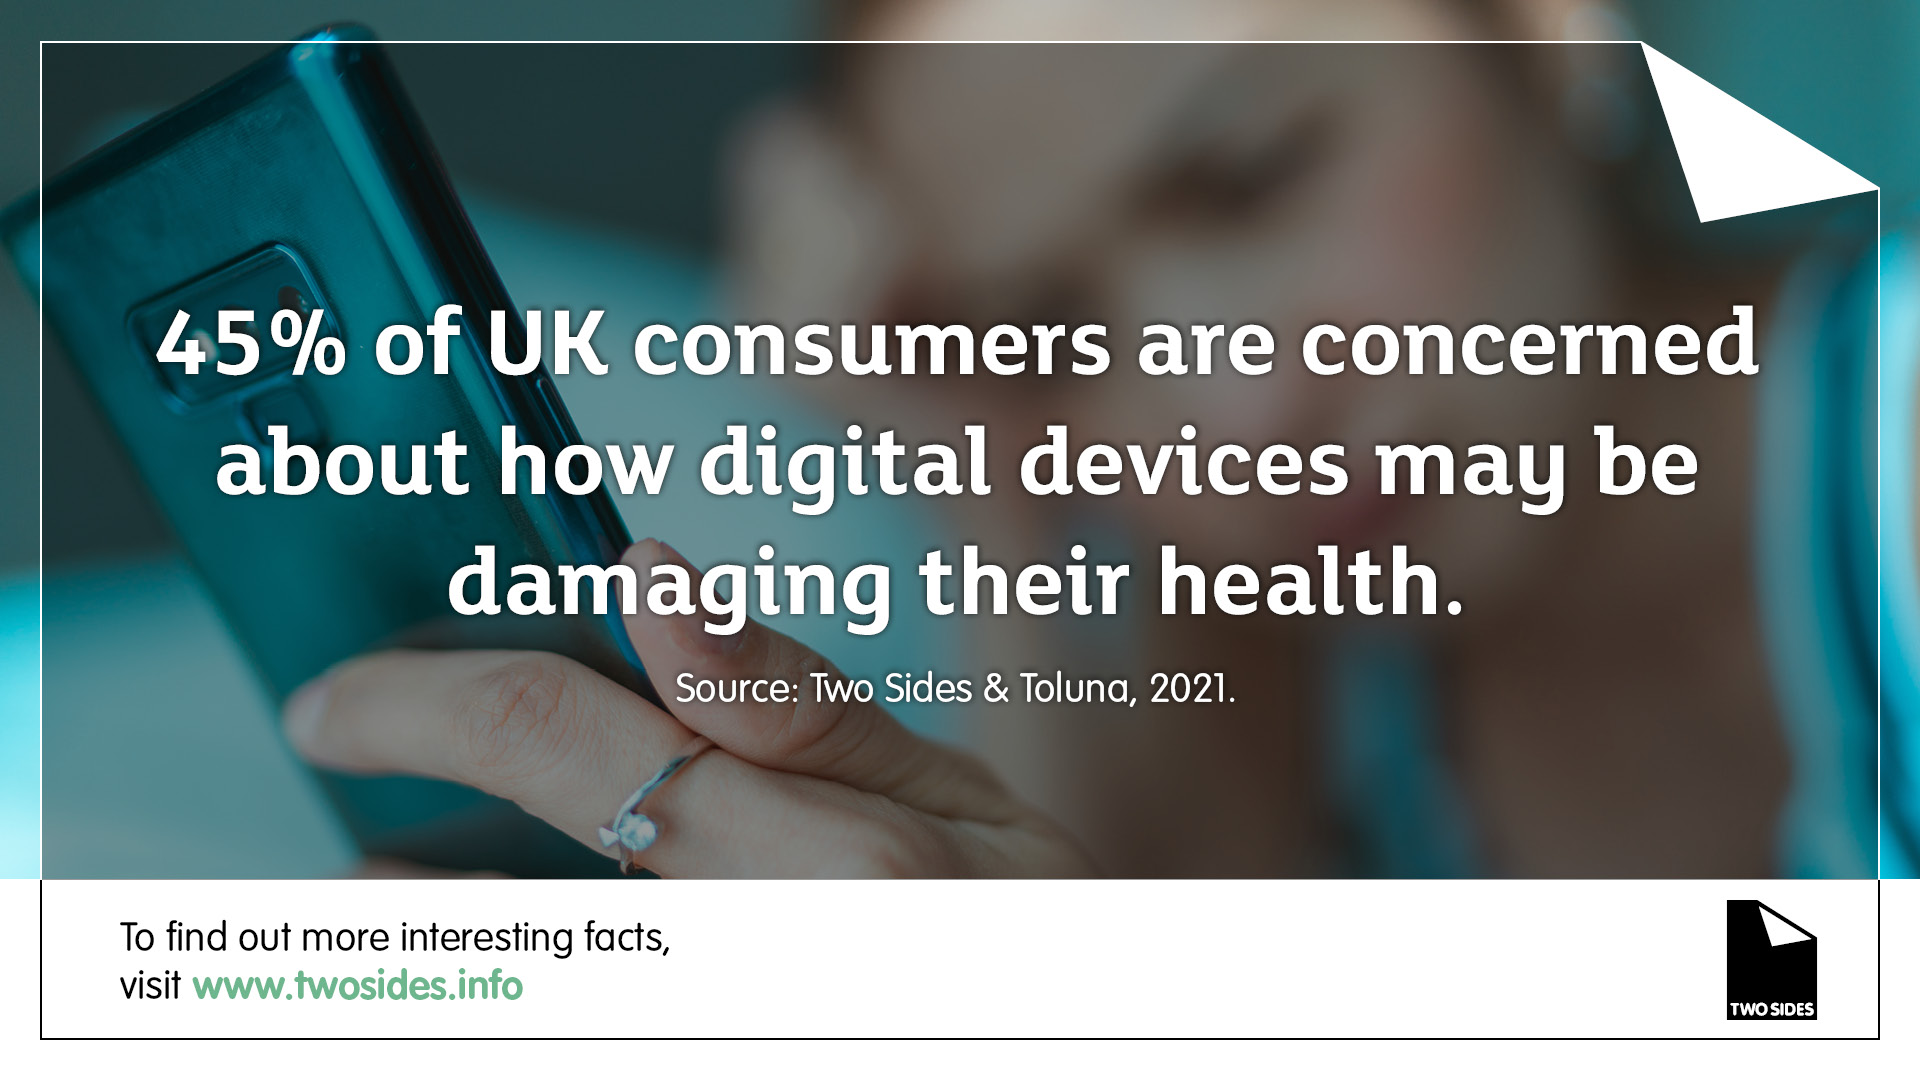 UK-consumers-concerned-digital-devices-are-damaging-health